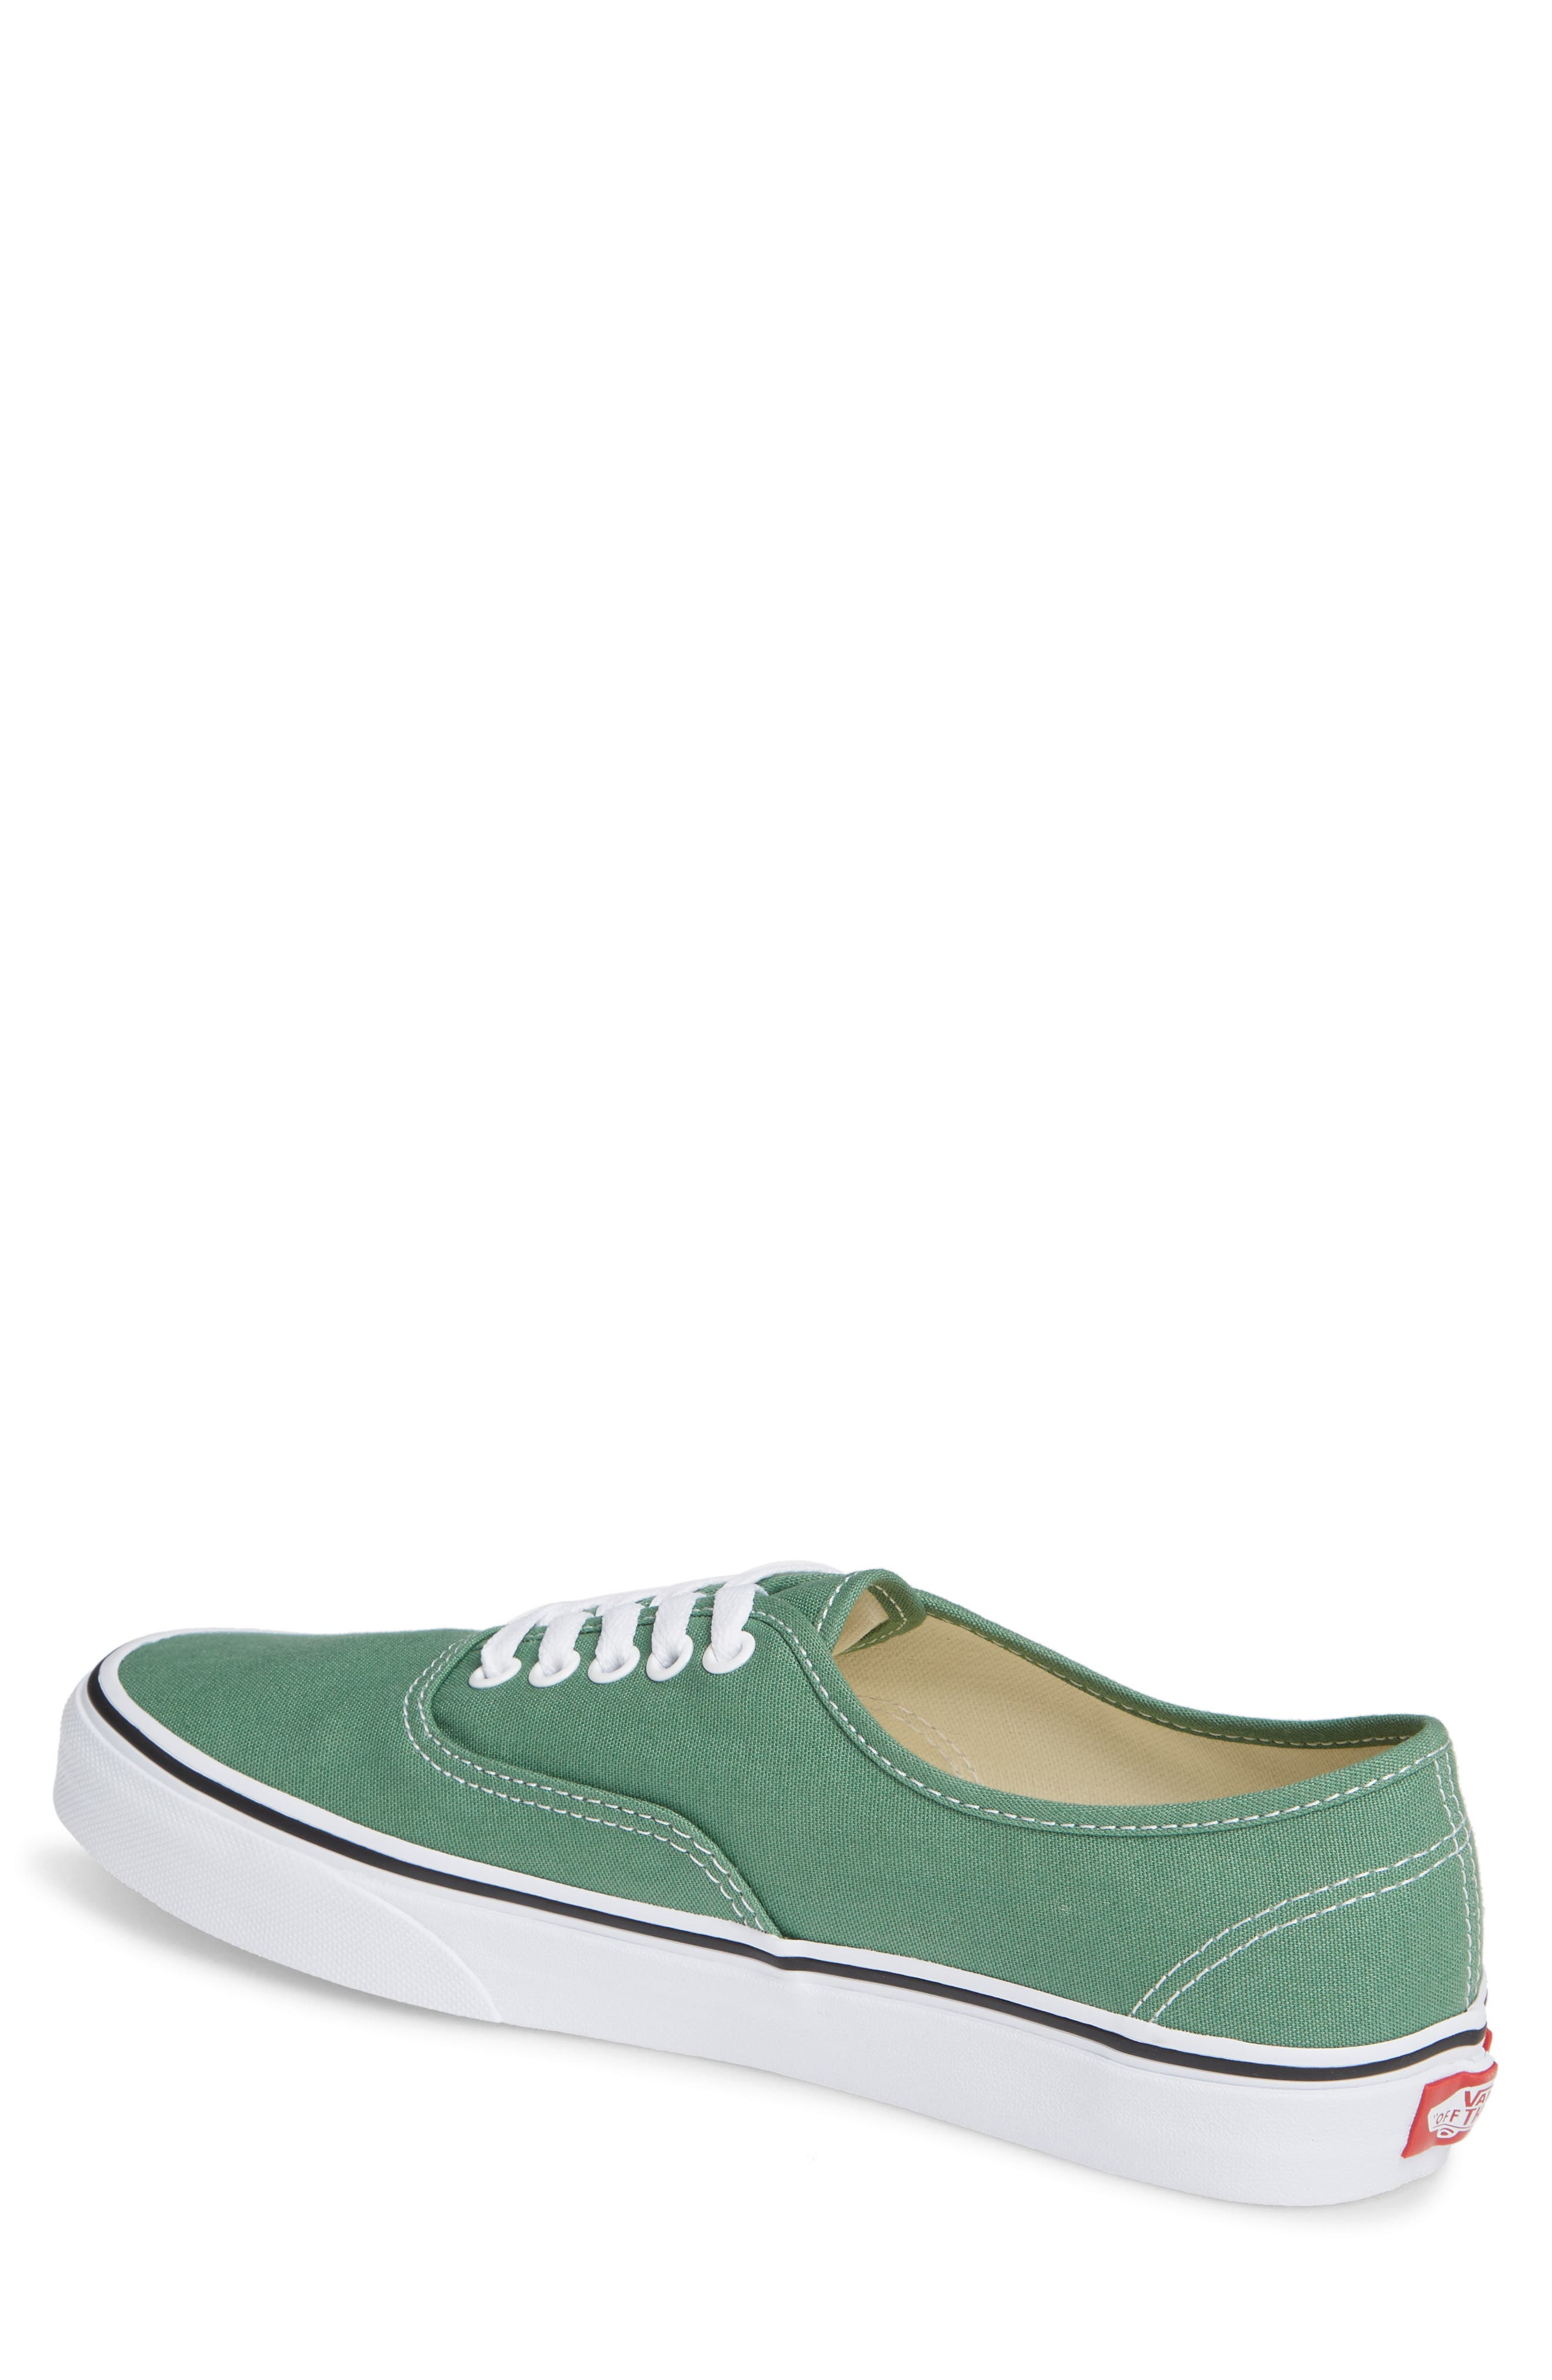 VANS,                             'Authentic' Sneaker,                             Alternate thumbnail 2, color,                             DEEP GRASS GREEN/ TRUE WHITE